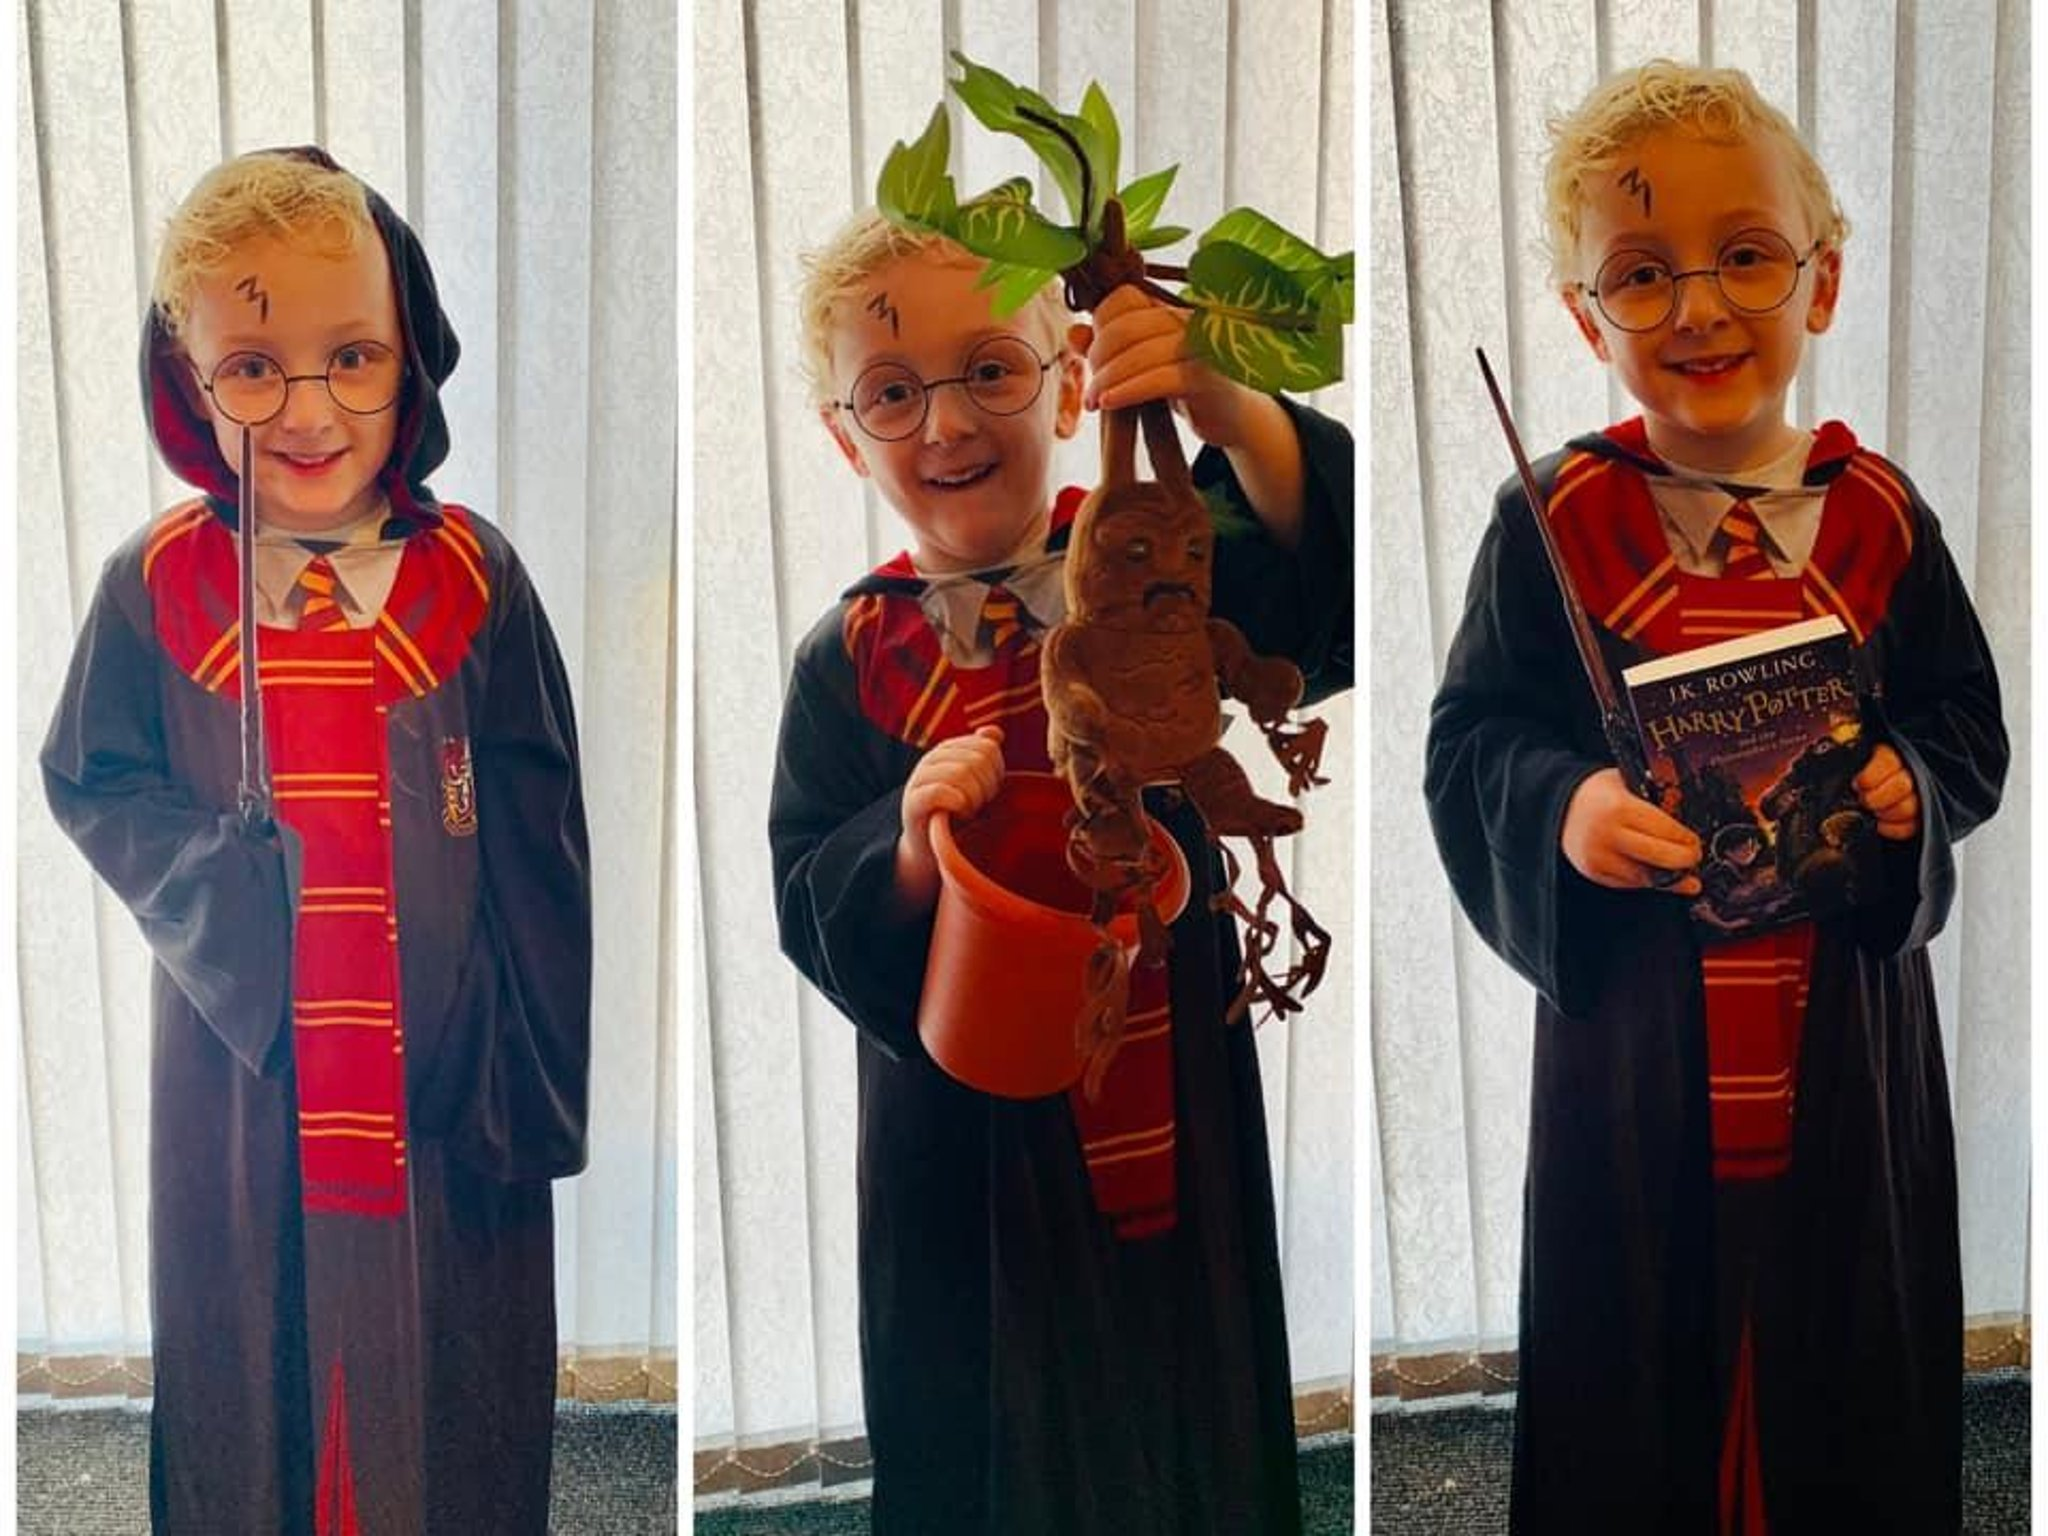 We asked what your kids are wearing for World Book Day - here are your adorable photos